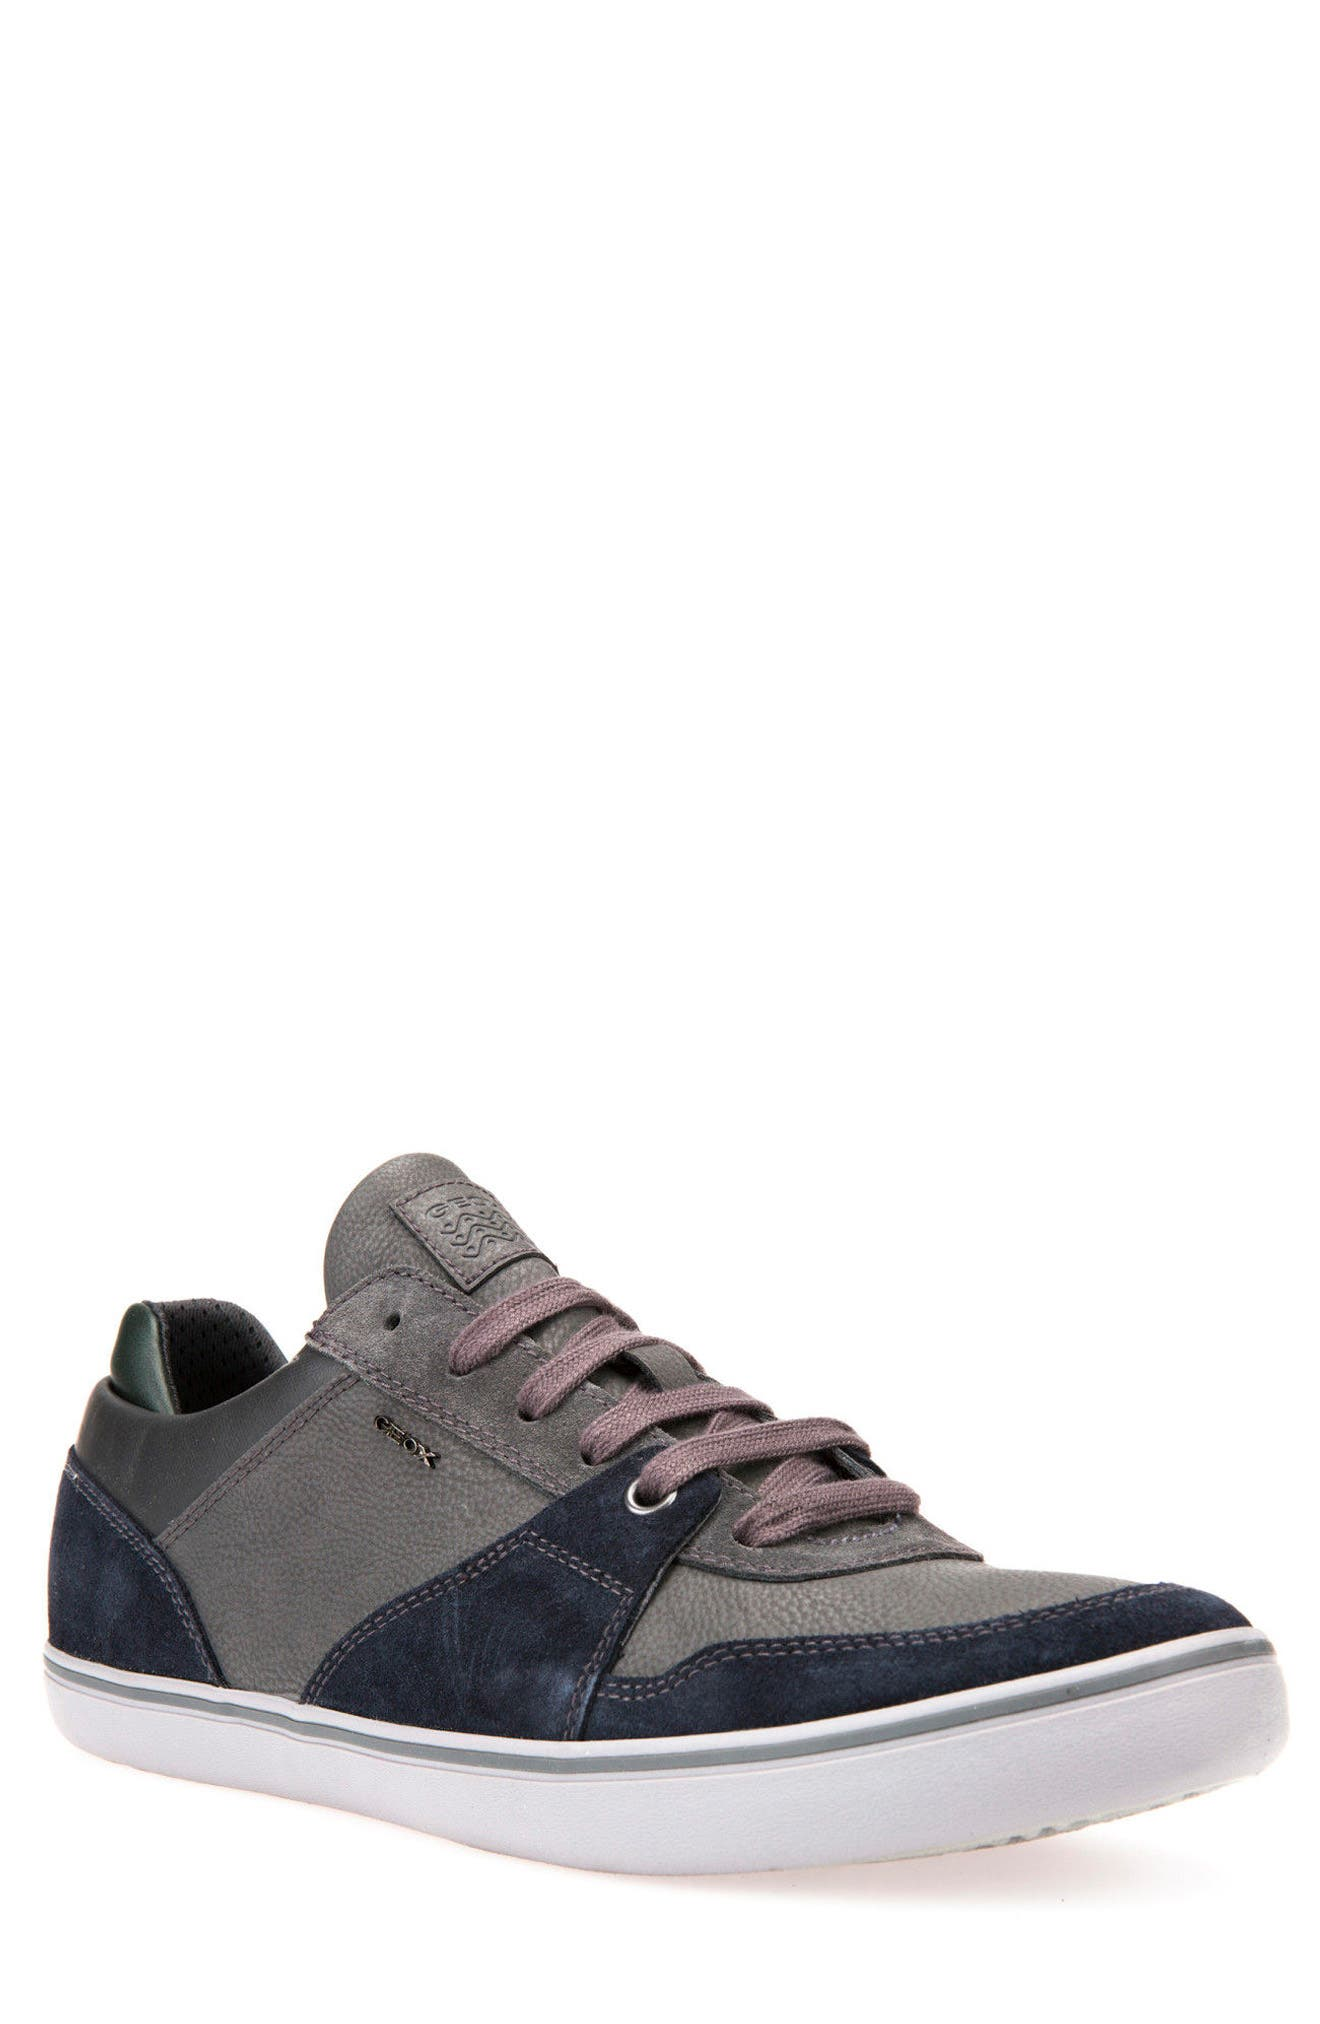 Box 26 Low Top Sneaker,                         Main,                         color, Navy/ Anthracite